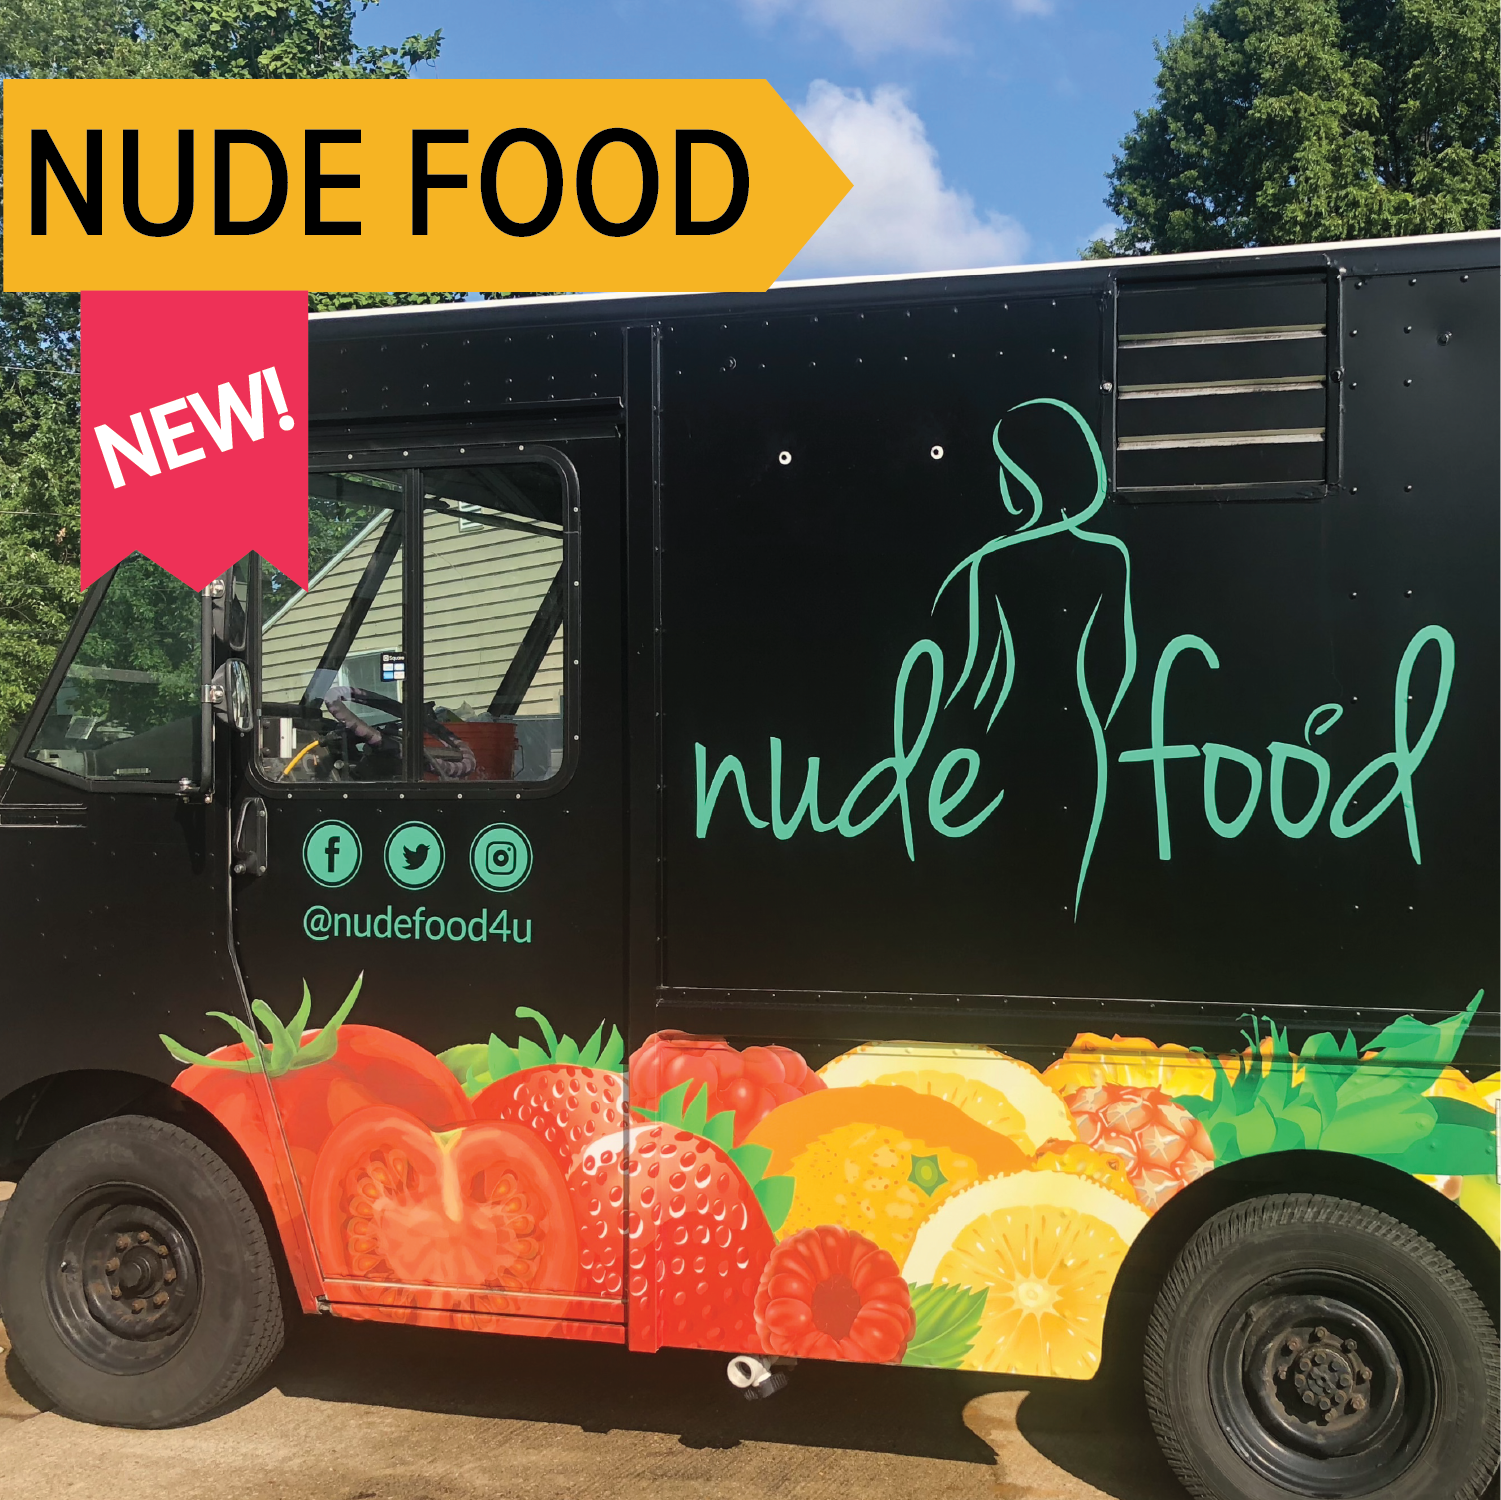 Nude Food   A completely vegan truck! Find a new favorite!